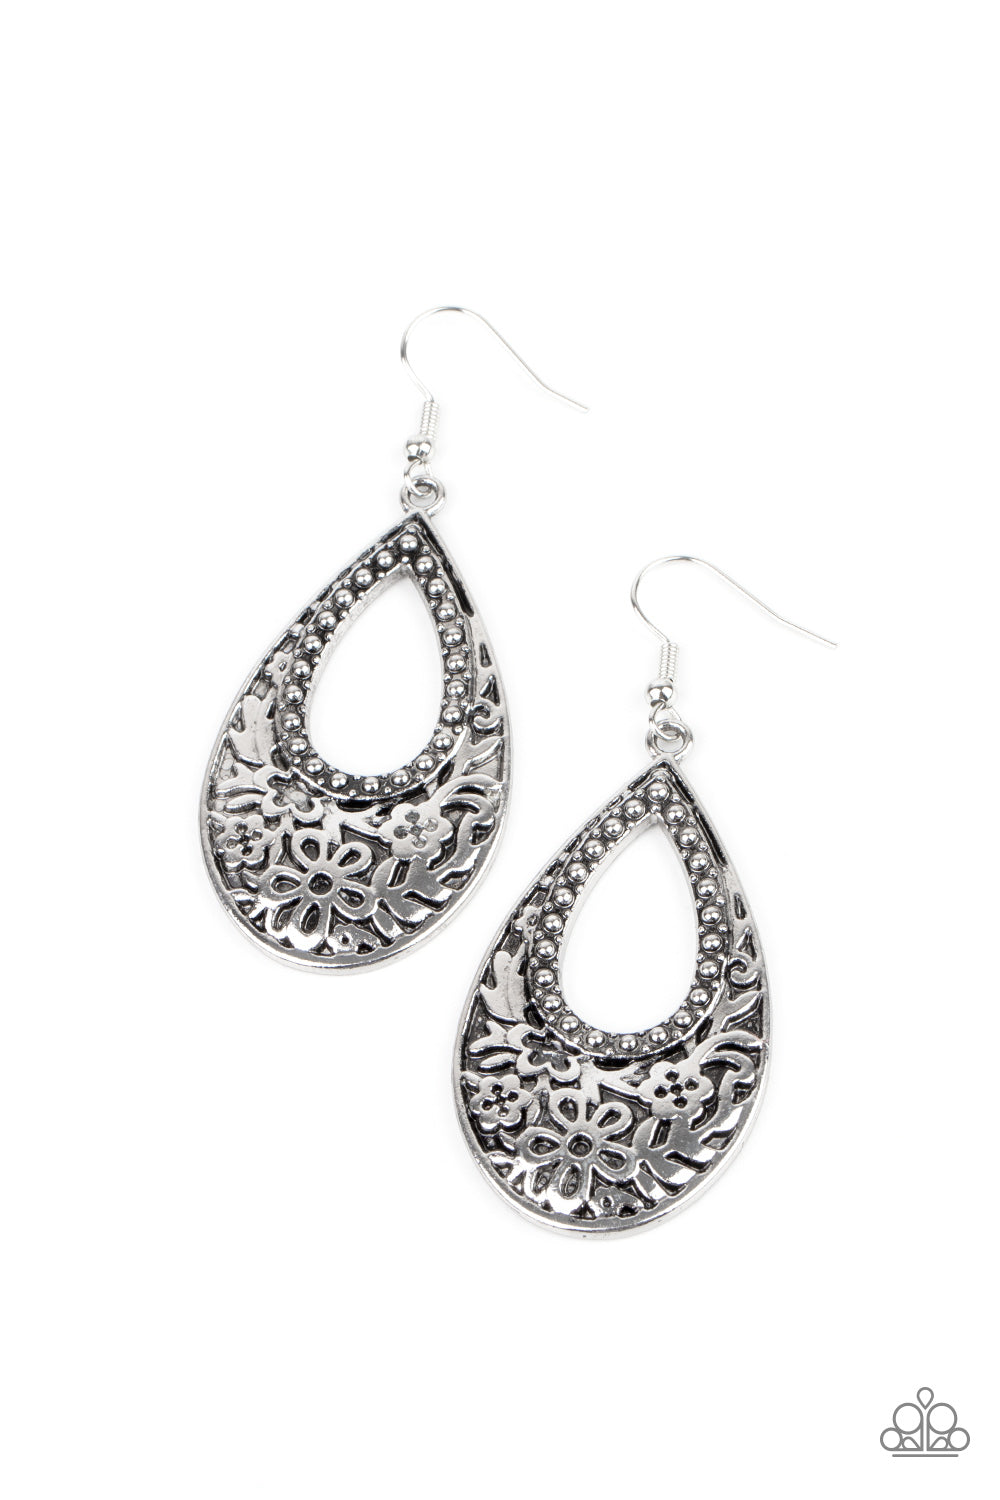 five-dollar-jewelry-organically-opulent-silver-earrings-paparazzi-accessories